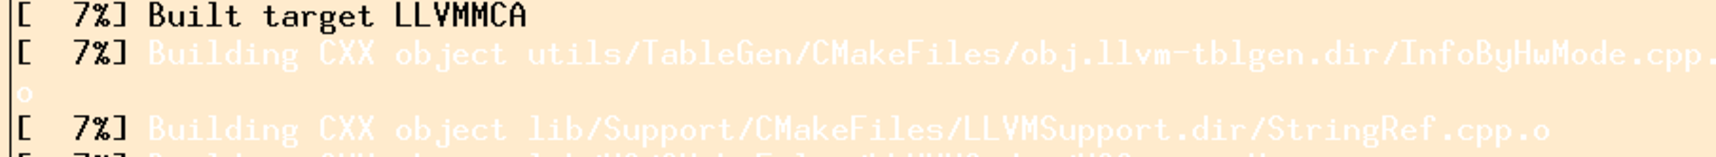 cmake-filth-detail.png